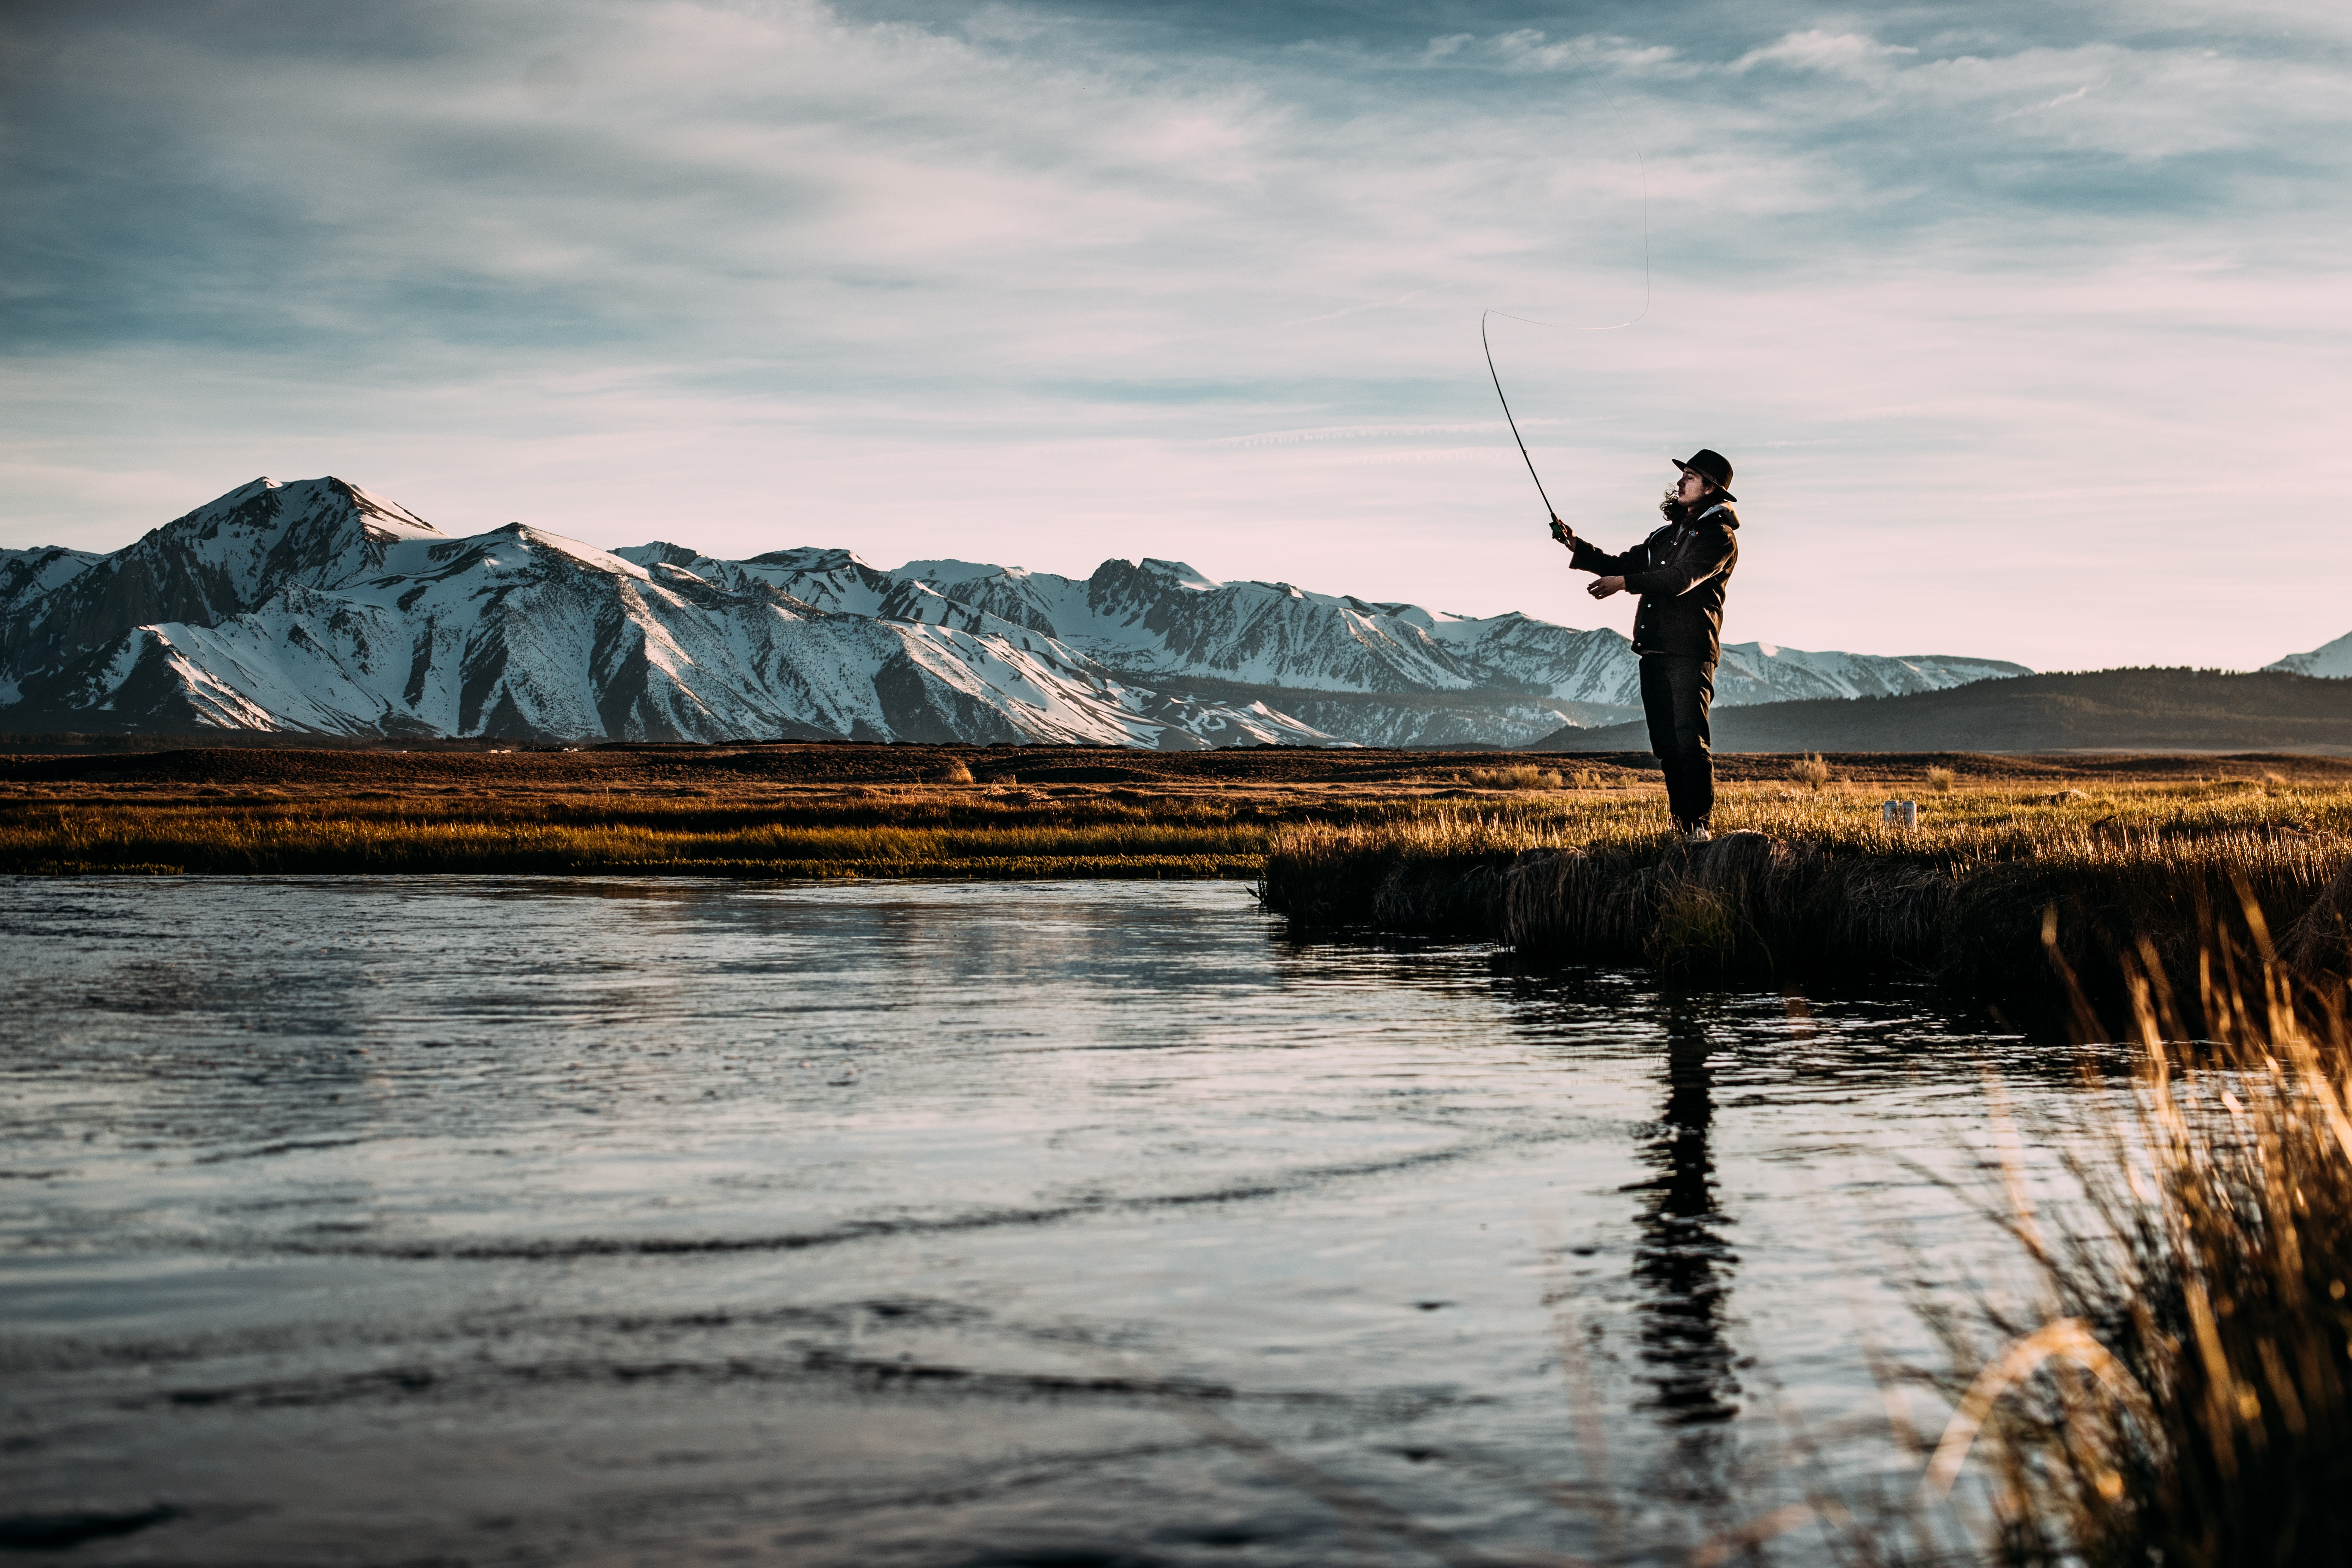 landscape photo of man fishing on river near mountain alps